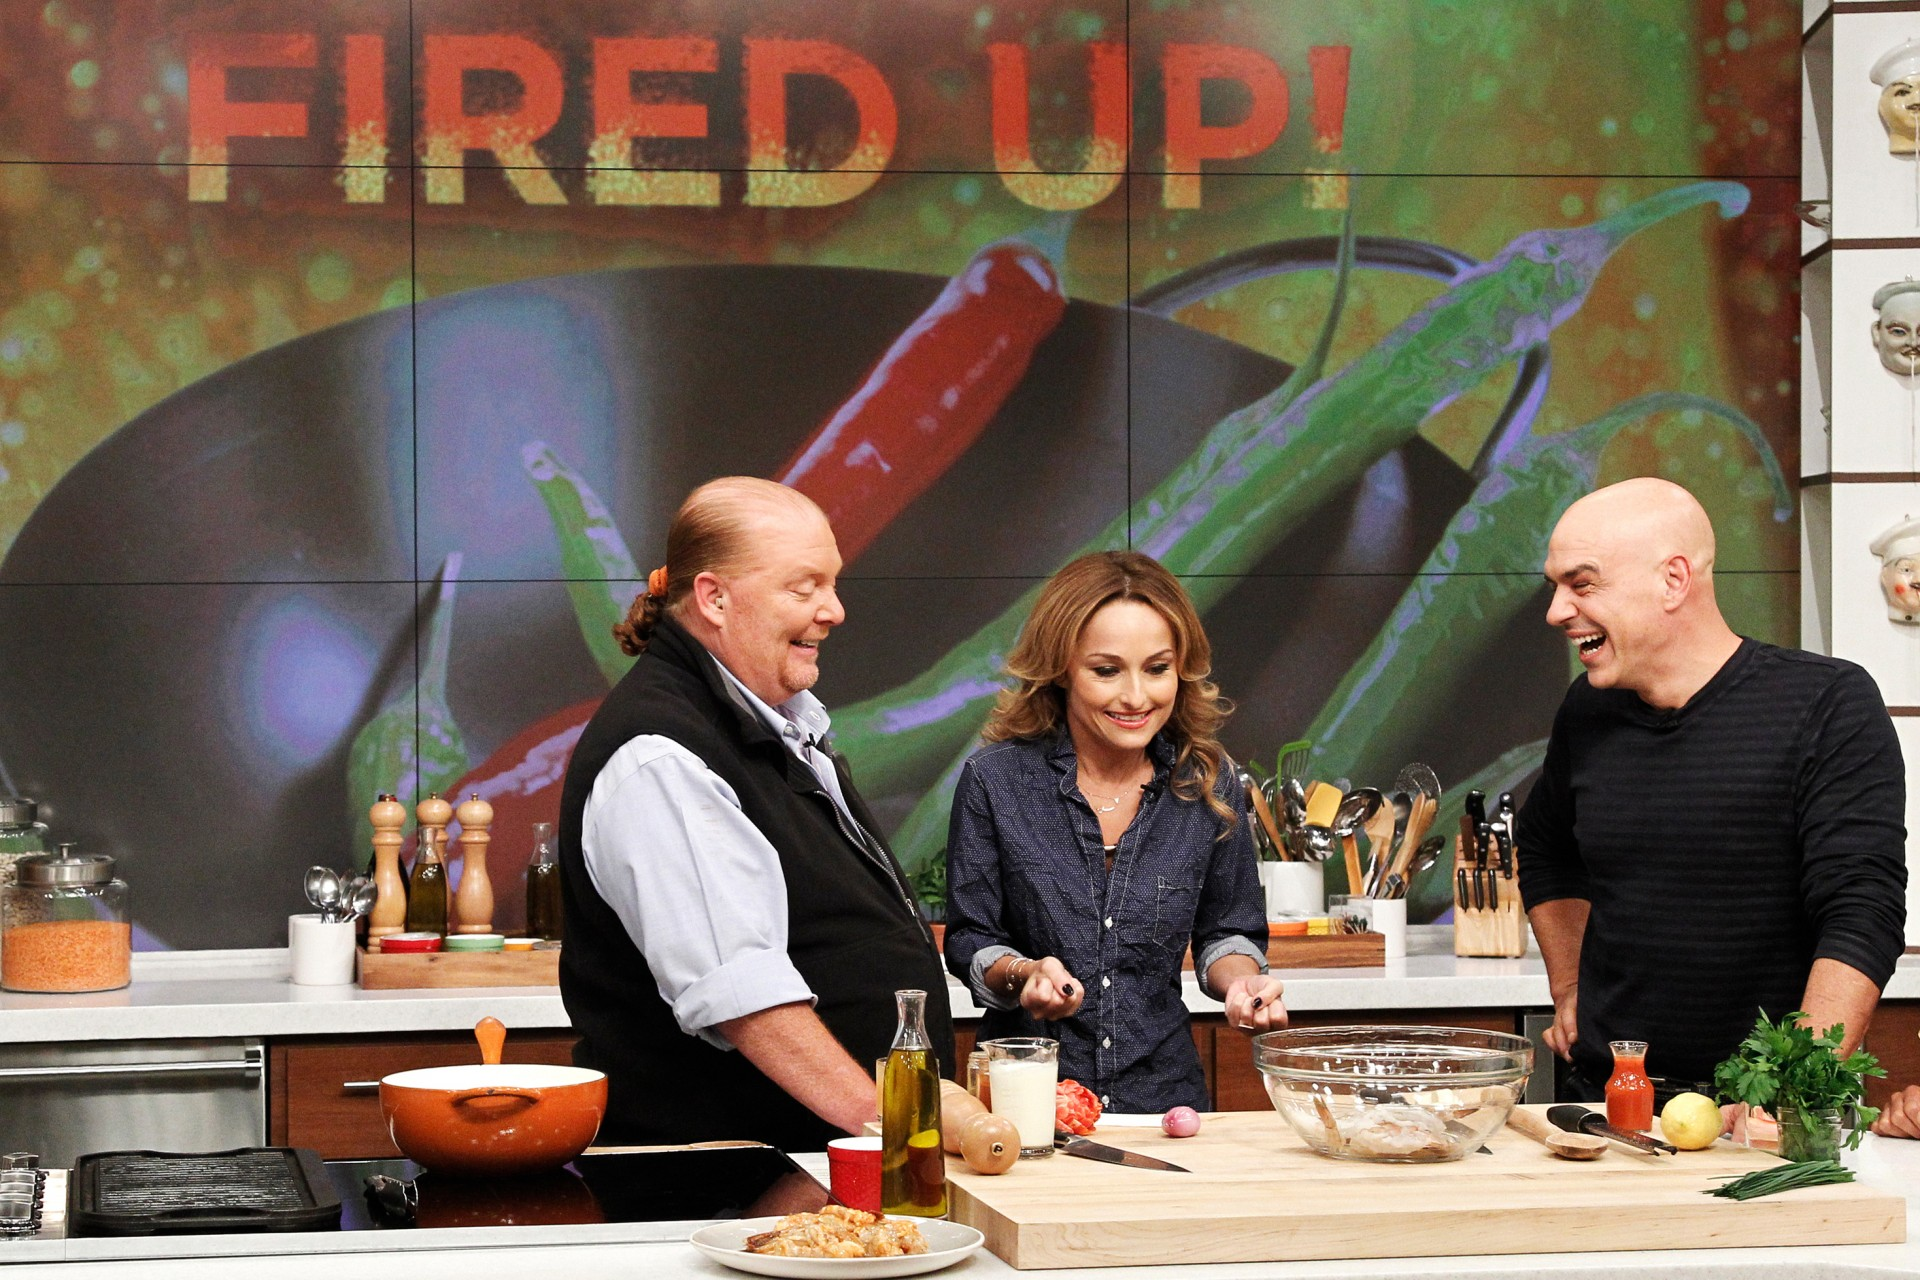 Celebrity chef Giada De Laurentiis during a guest appearance on ABC's The Chew last fall. She can cook rich foods and keep her trim figure, but new research suggests that's a difficult feat for amateur cooks watching along at home. Photo: Lou Rocco/ABC/Getty Images